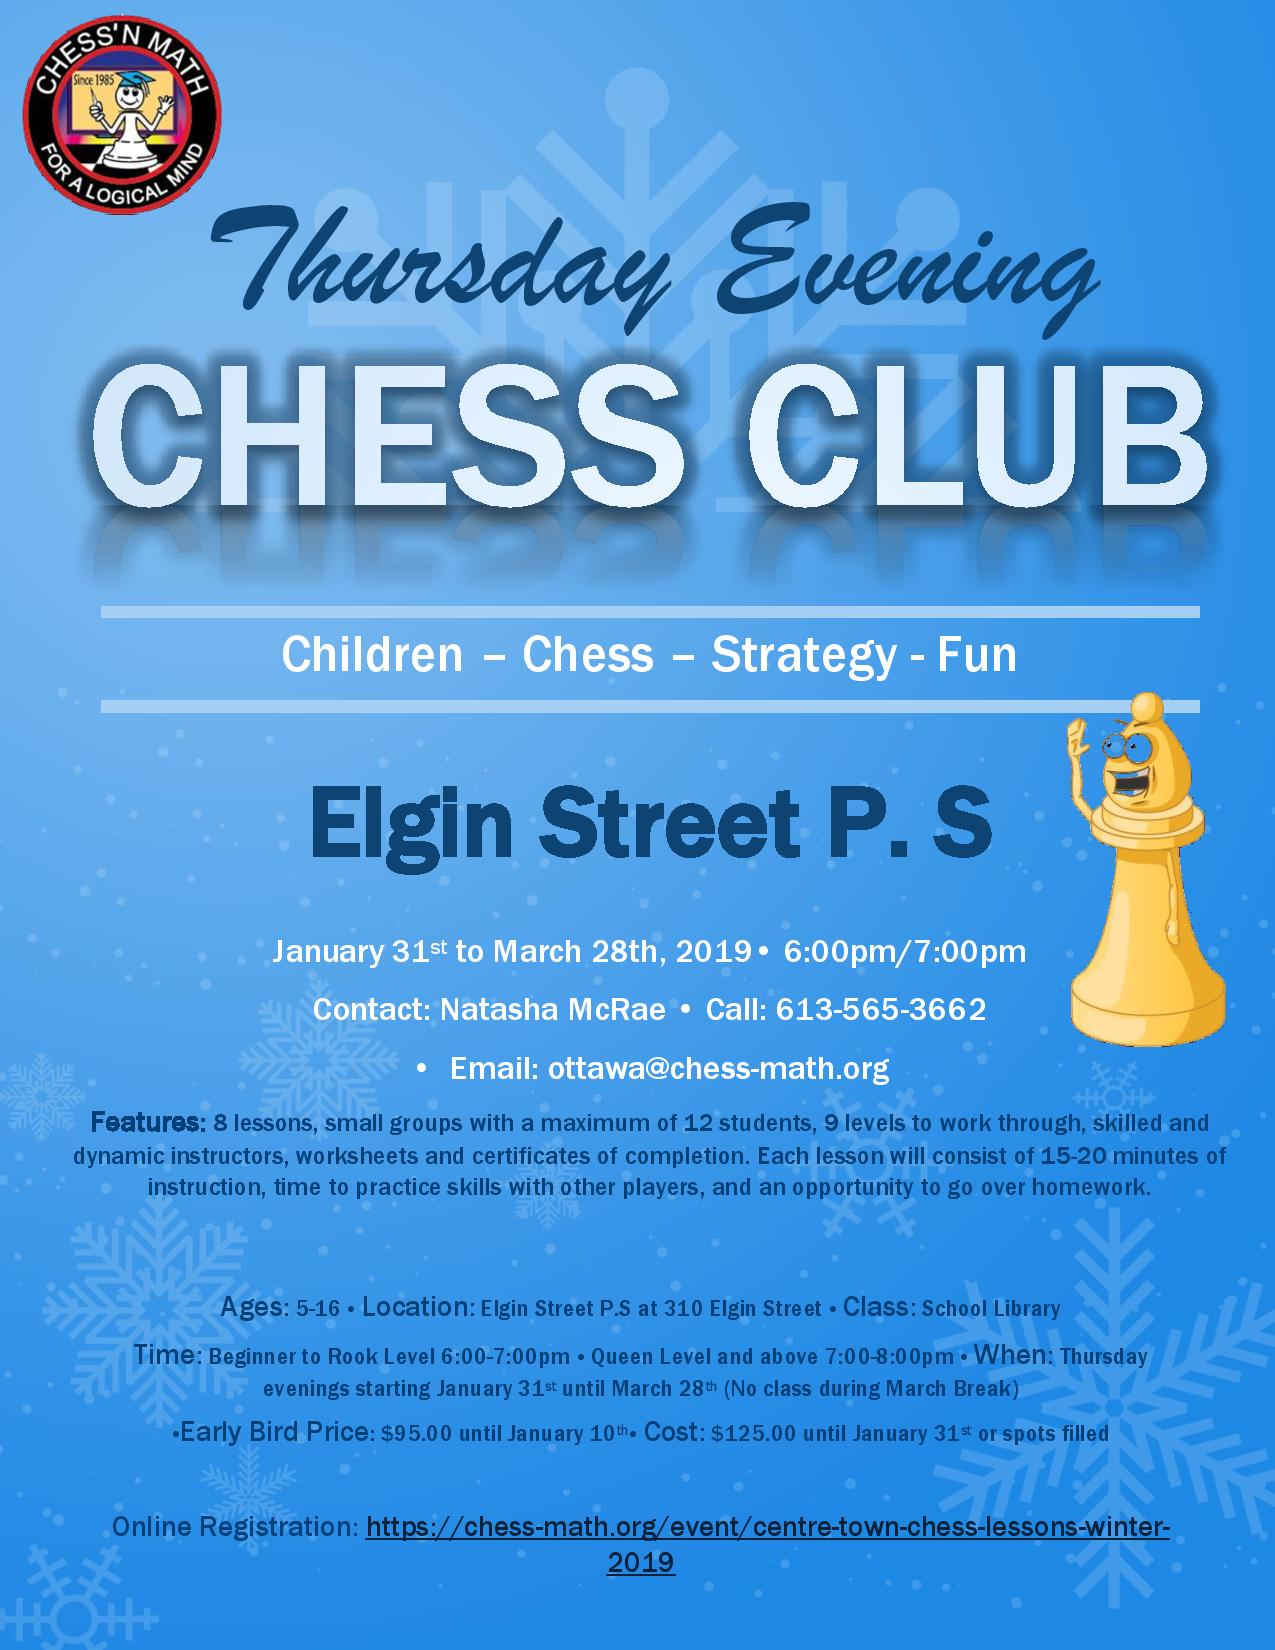 Centretown Chess Club Winter 2019 Elgin Street